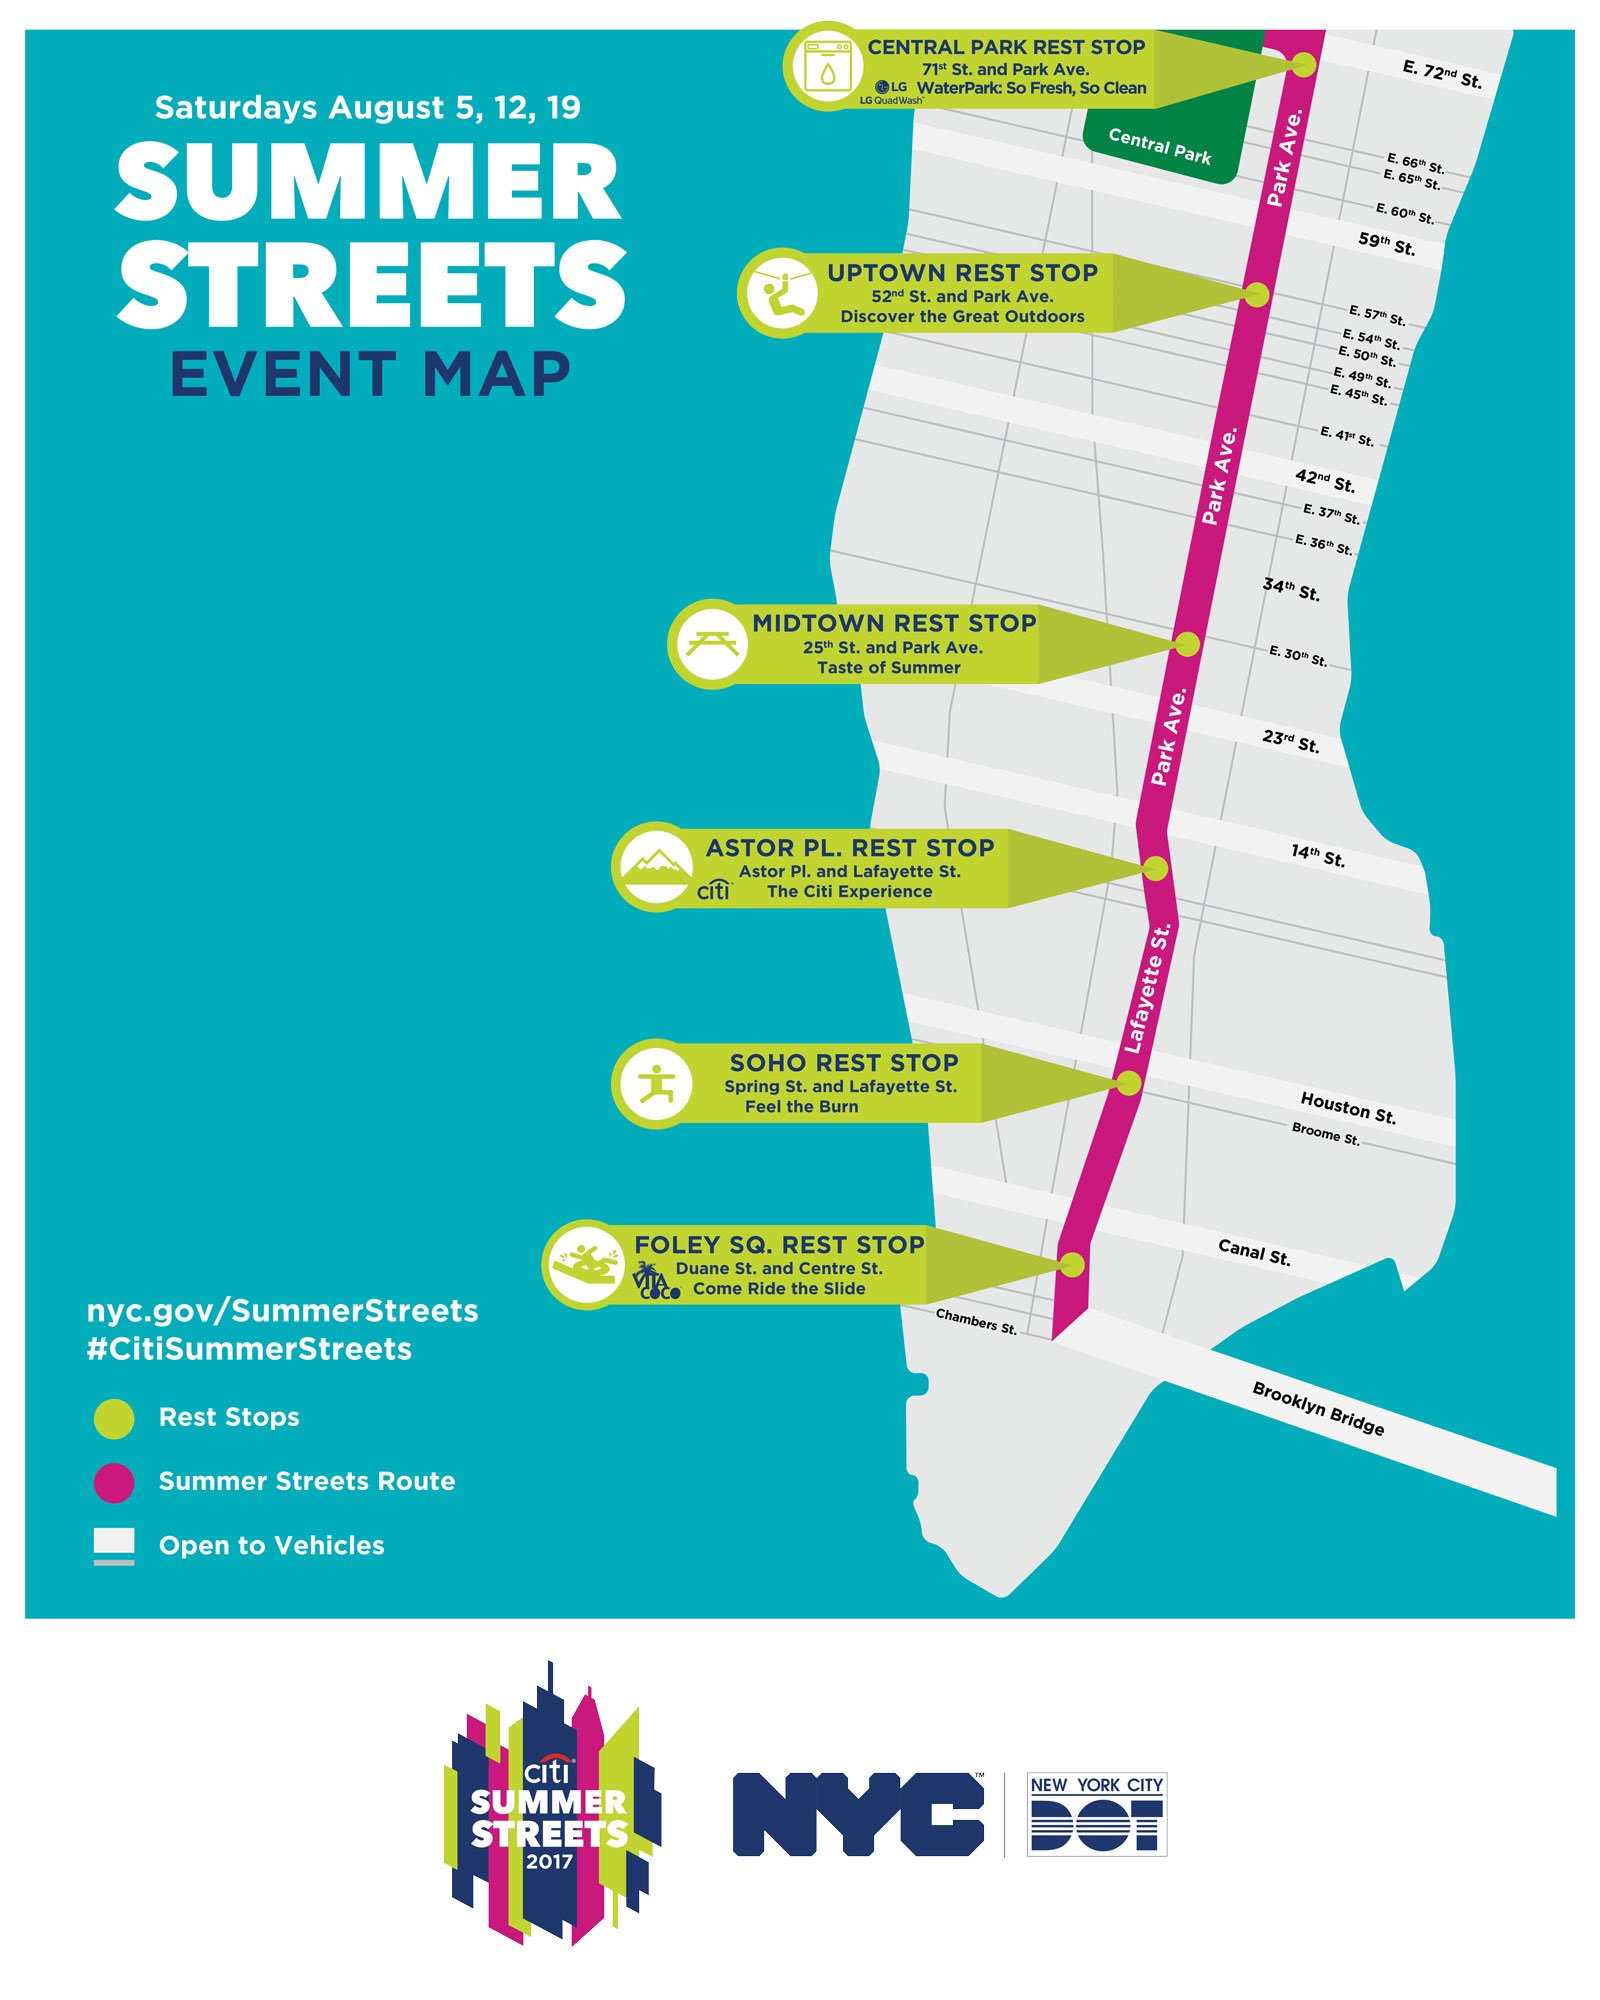 The Summer Streets events map showing the 6 rest stops throughout Manhattan on Park Ave: Central Park, Uptown, Midtown, Astor Place, Soho, and Foley Square